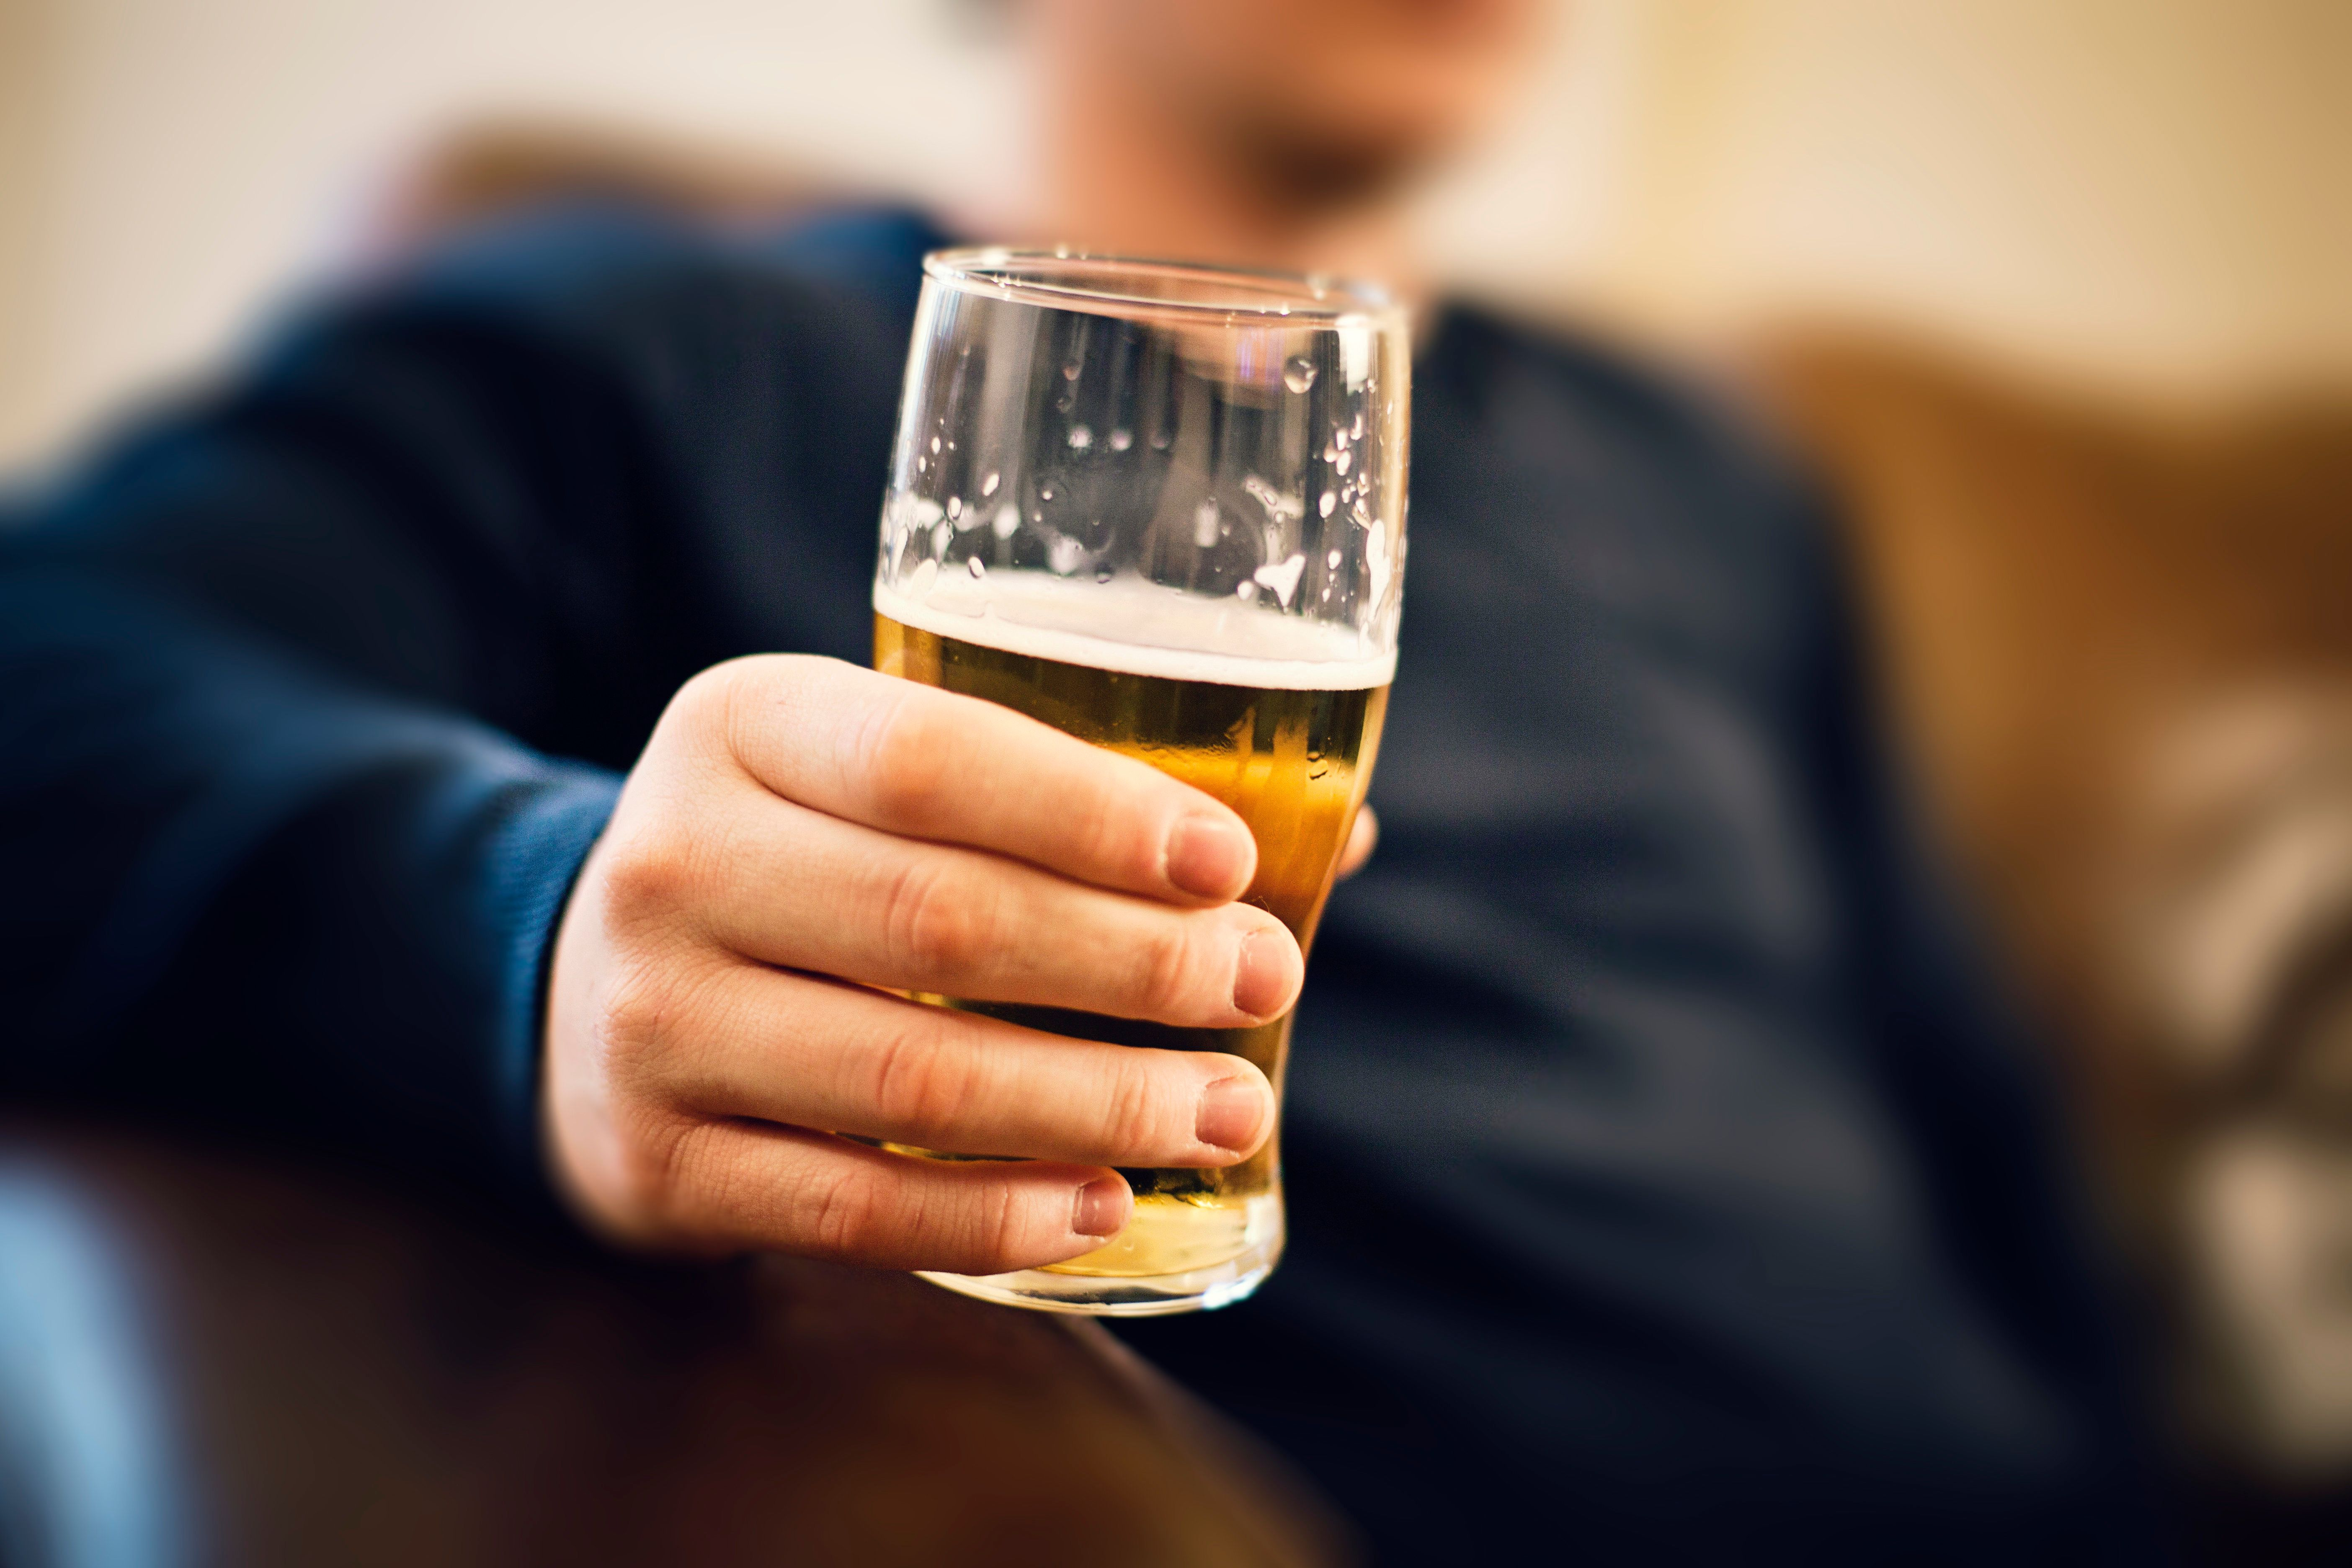 Strong link confirmed between drinking and dementia